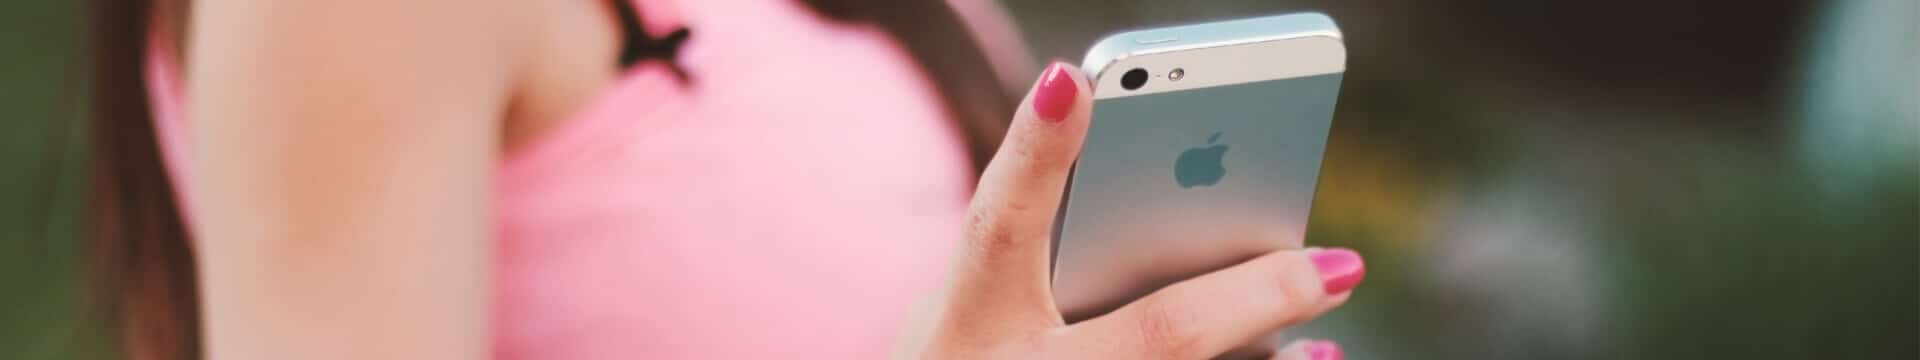 Leading UK retailers are still not mobile-ready